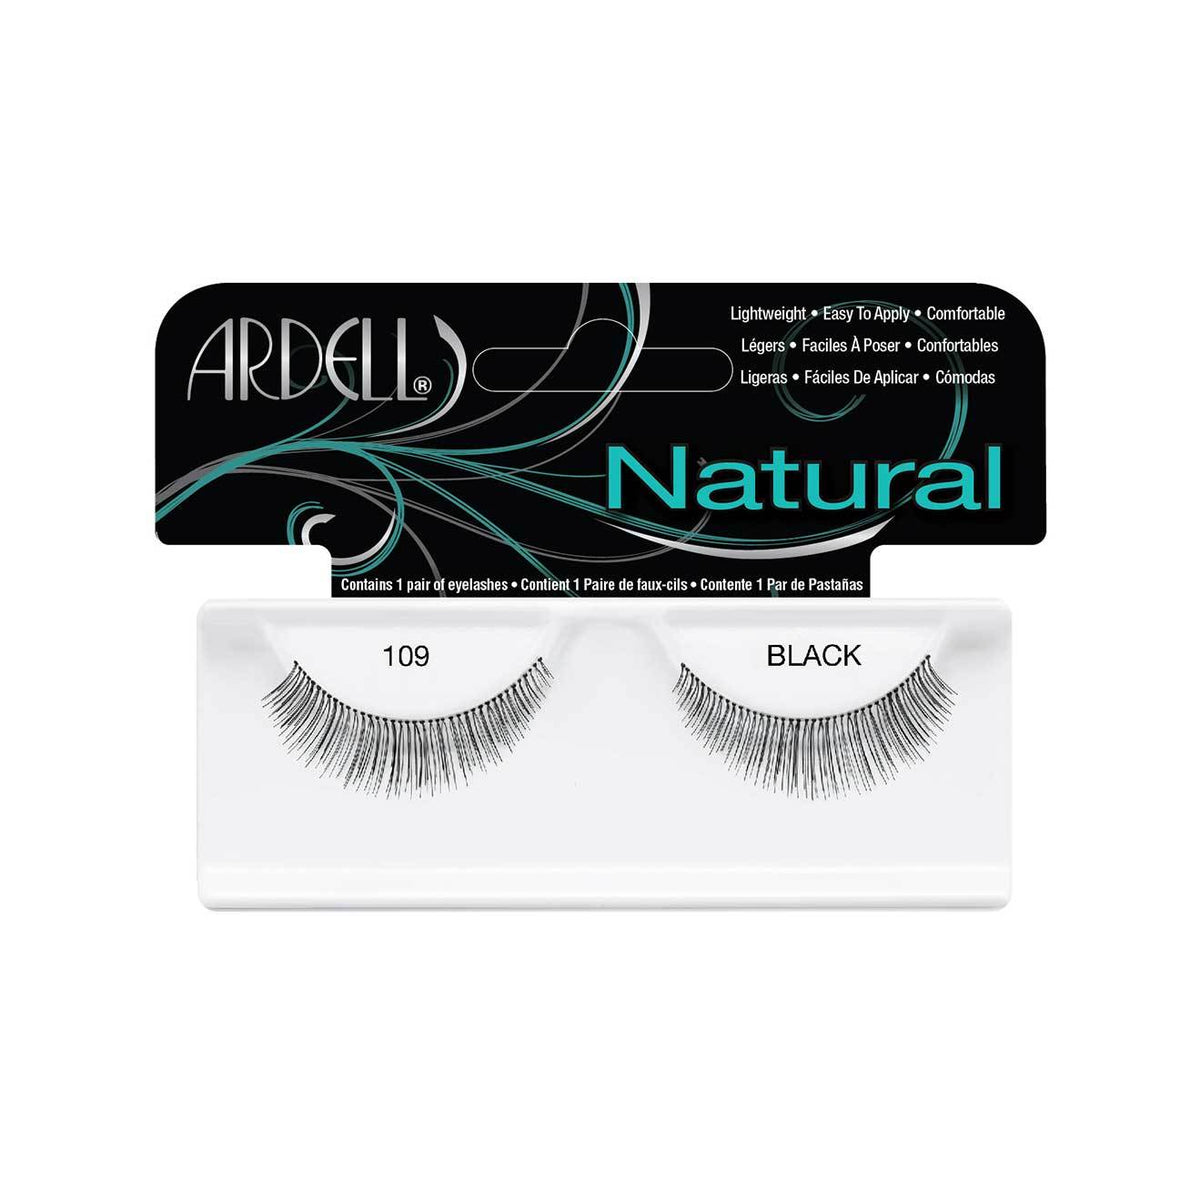 Ardell Natural Lashes 109 Demi Black